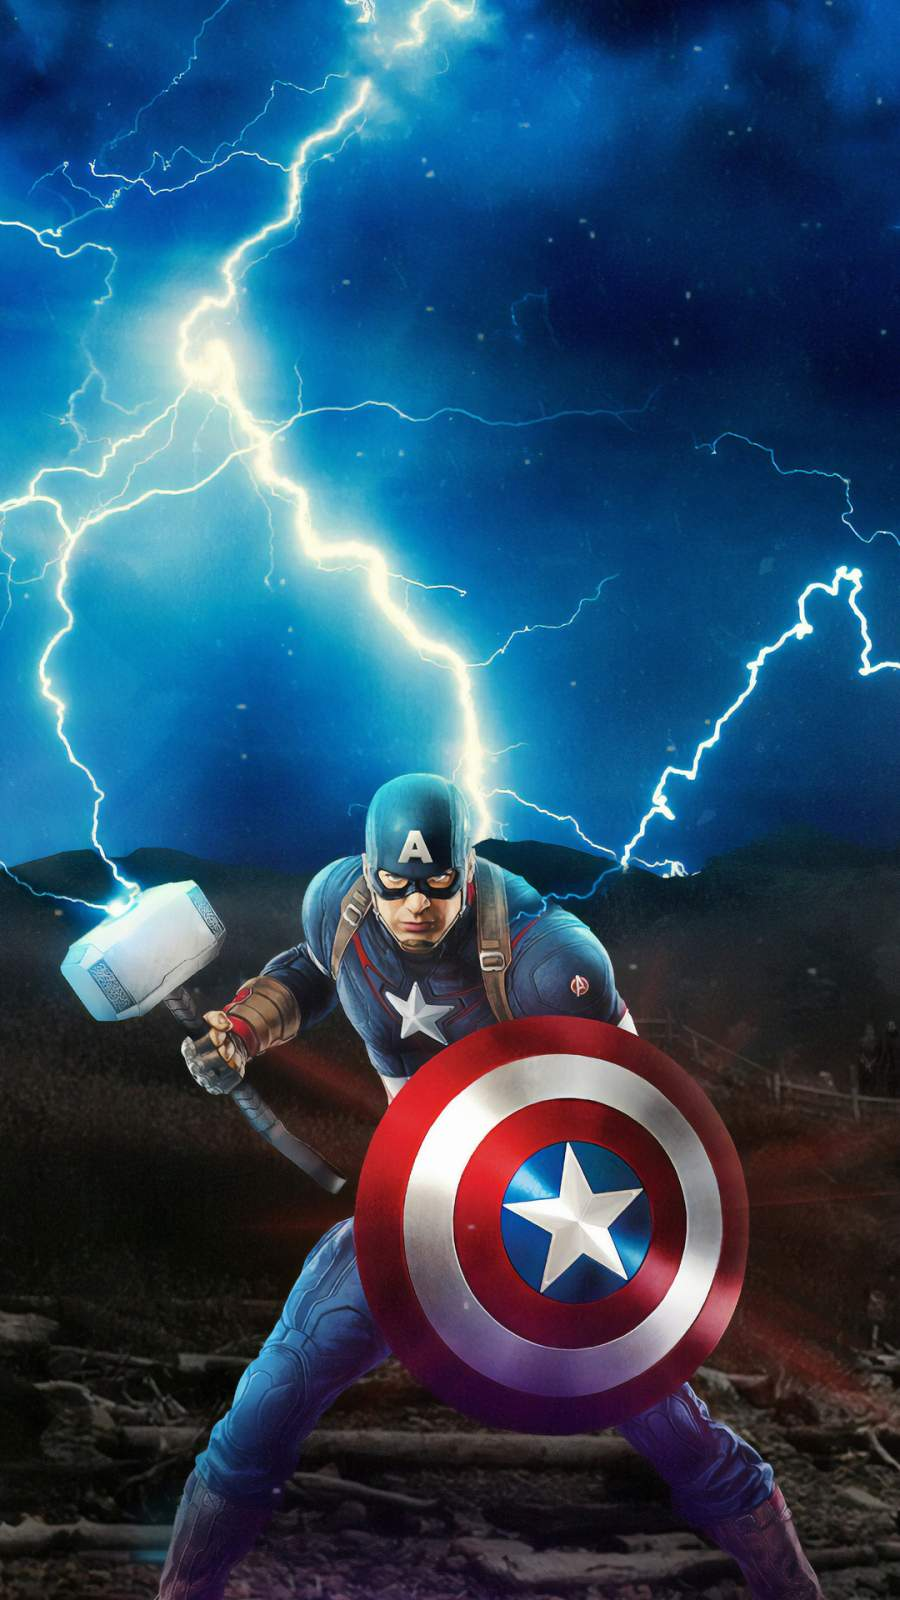 Artistic Quotes Wallpaper Captain America Mjolnir Avengers Iphone Wallpaper Iphone